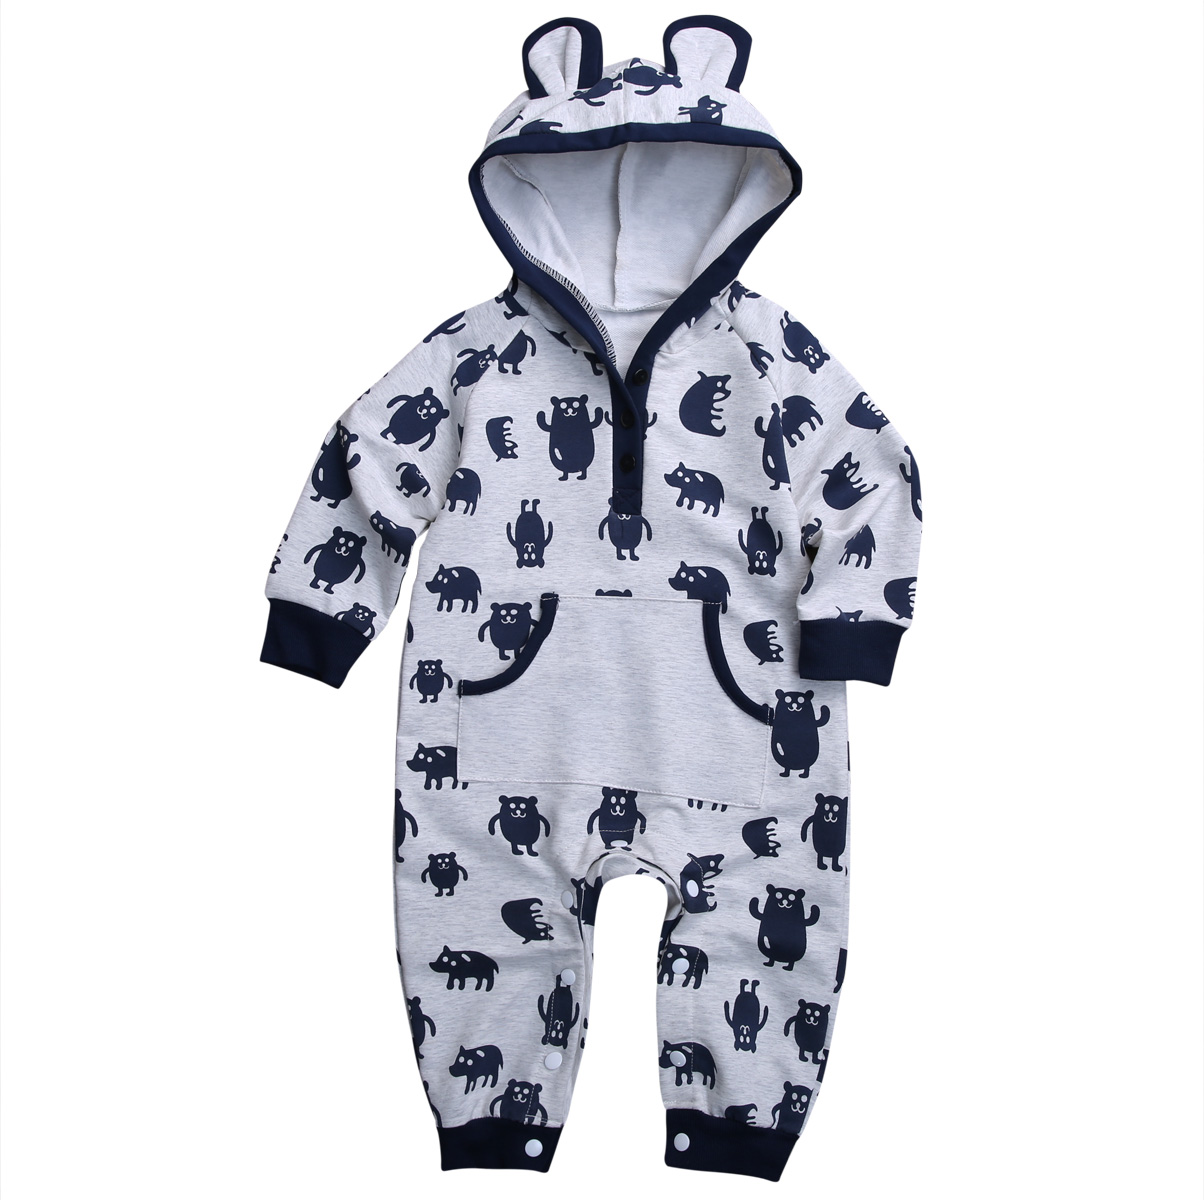 Newborn Infant Baby Boy Girl Kids Winter Clothes Cotton Warm Bear Long Romper Jumpsuit Outfit newborn infant baby boy girl cotton romper jumpsuit boys girl angel wings long sleeve rompers white gray autumn clothes outfit